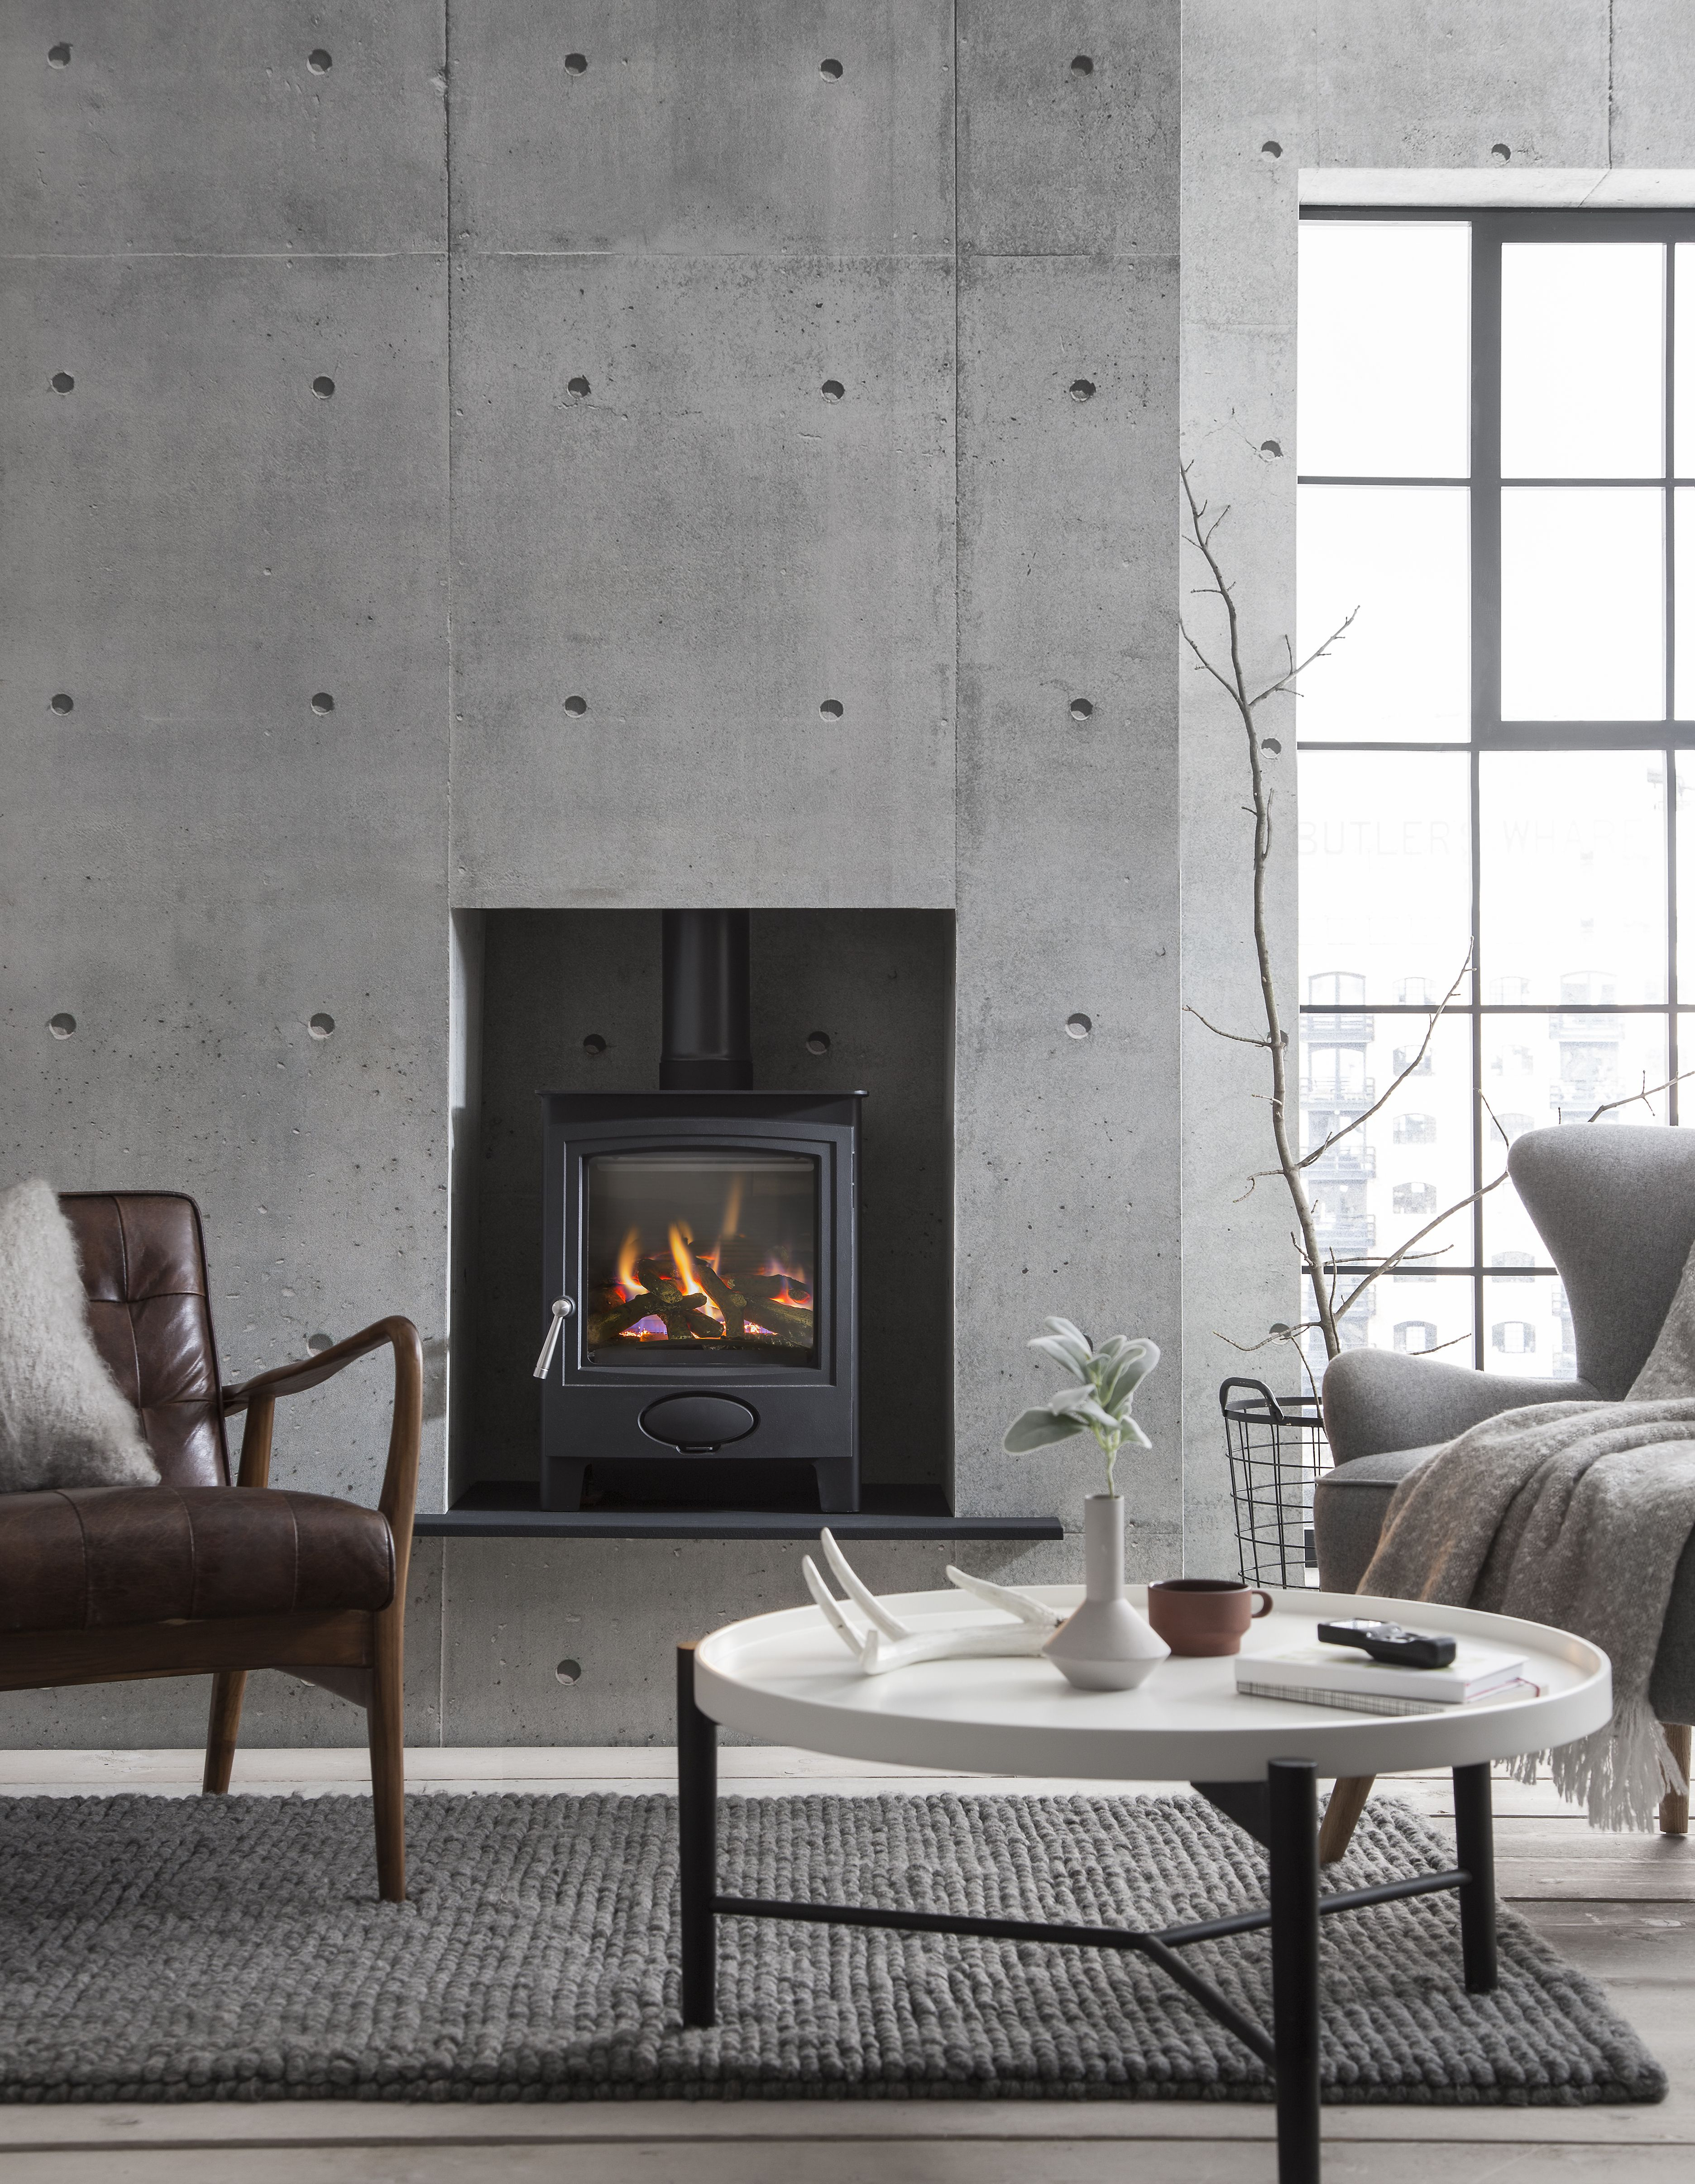 Wood Stove Living Room Design: Arada Stoves And Winter Hygge